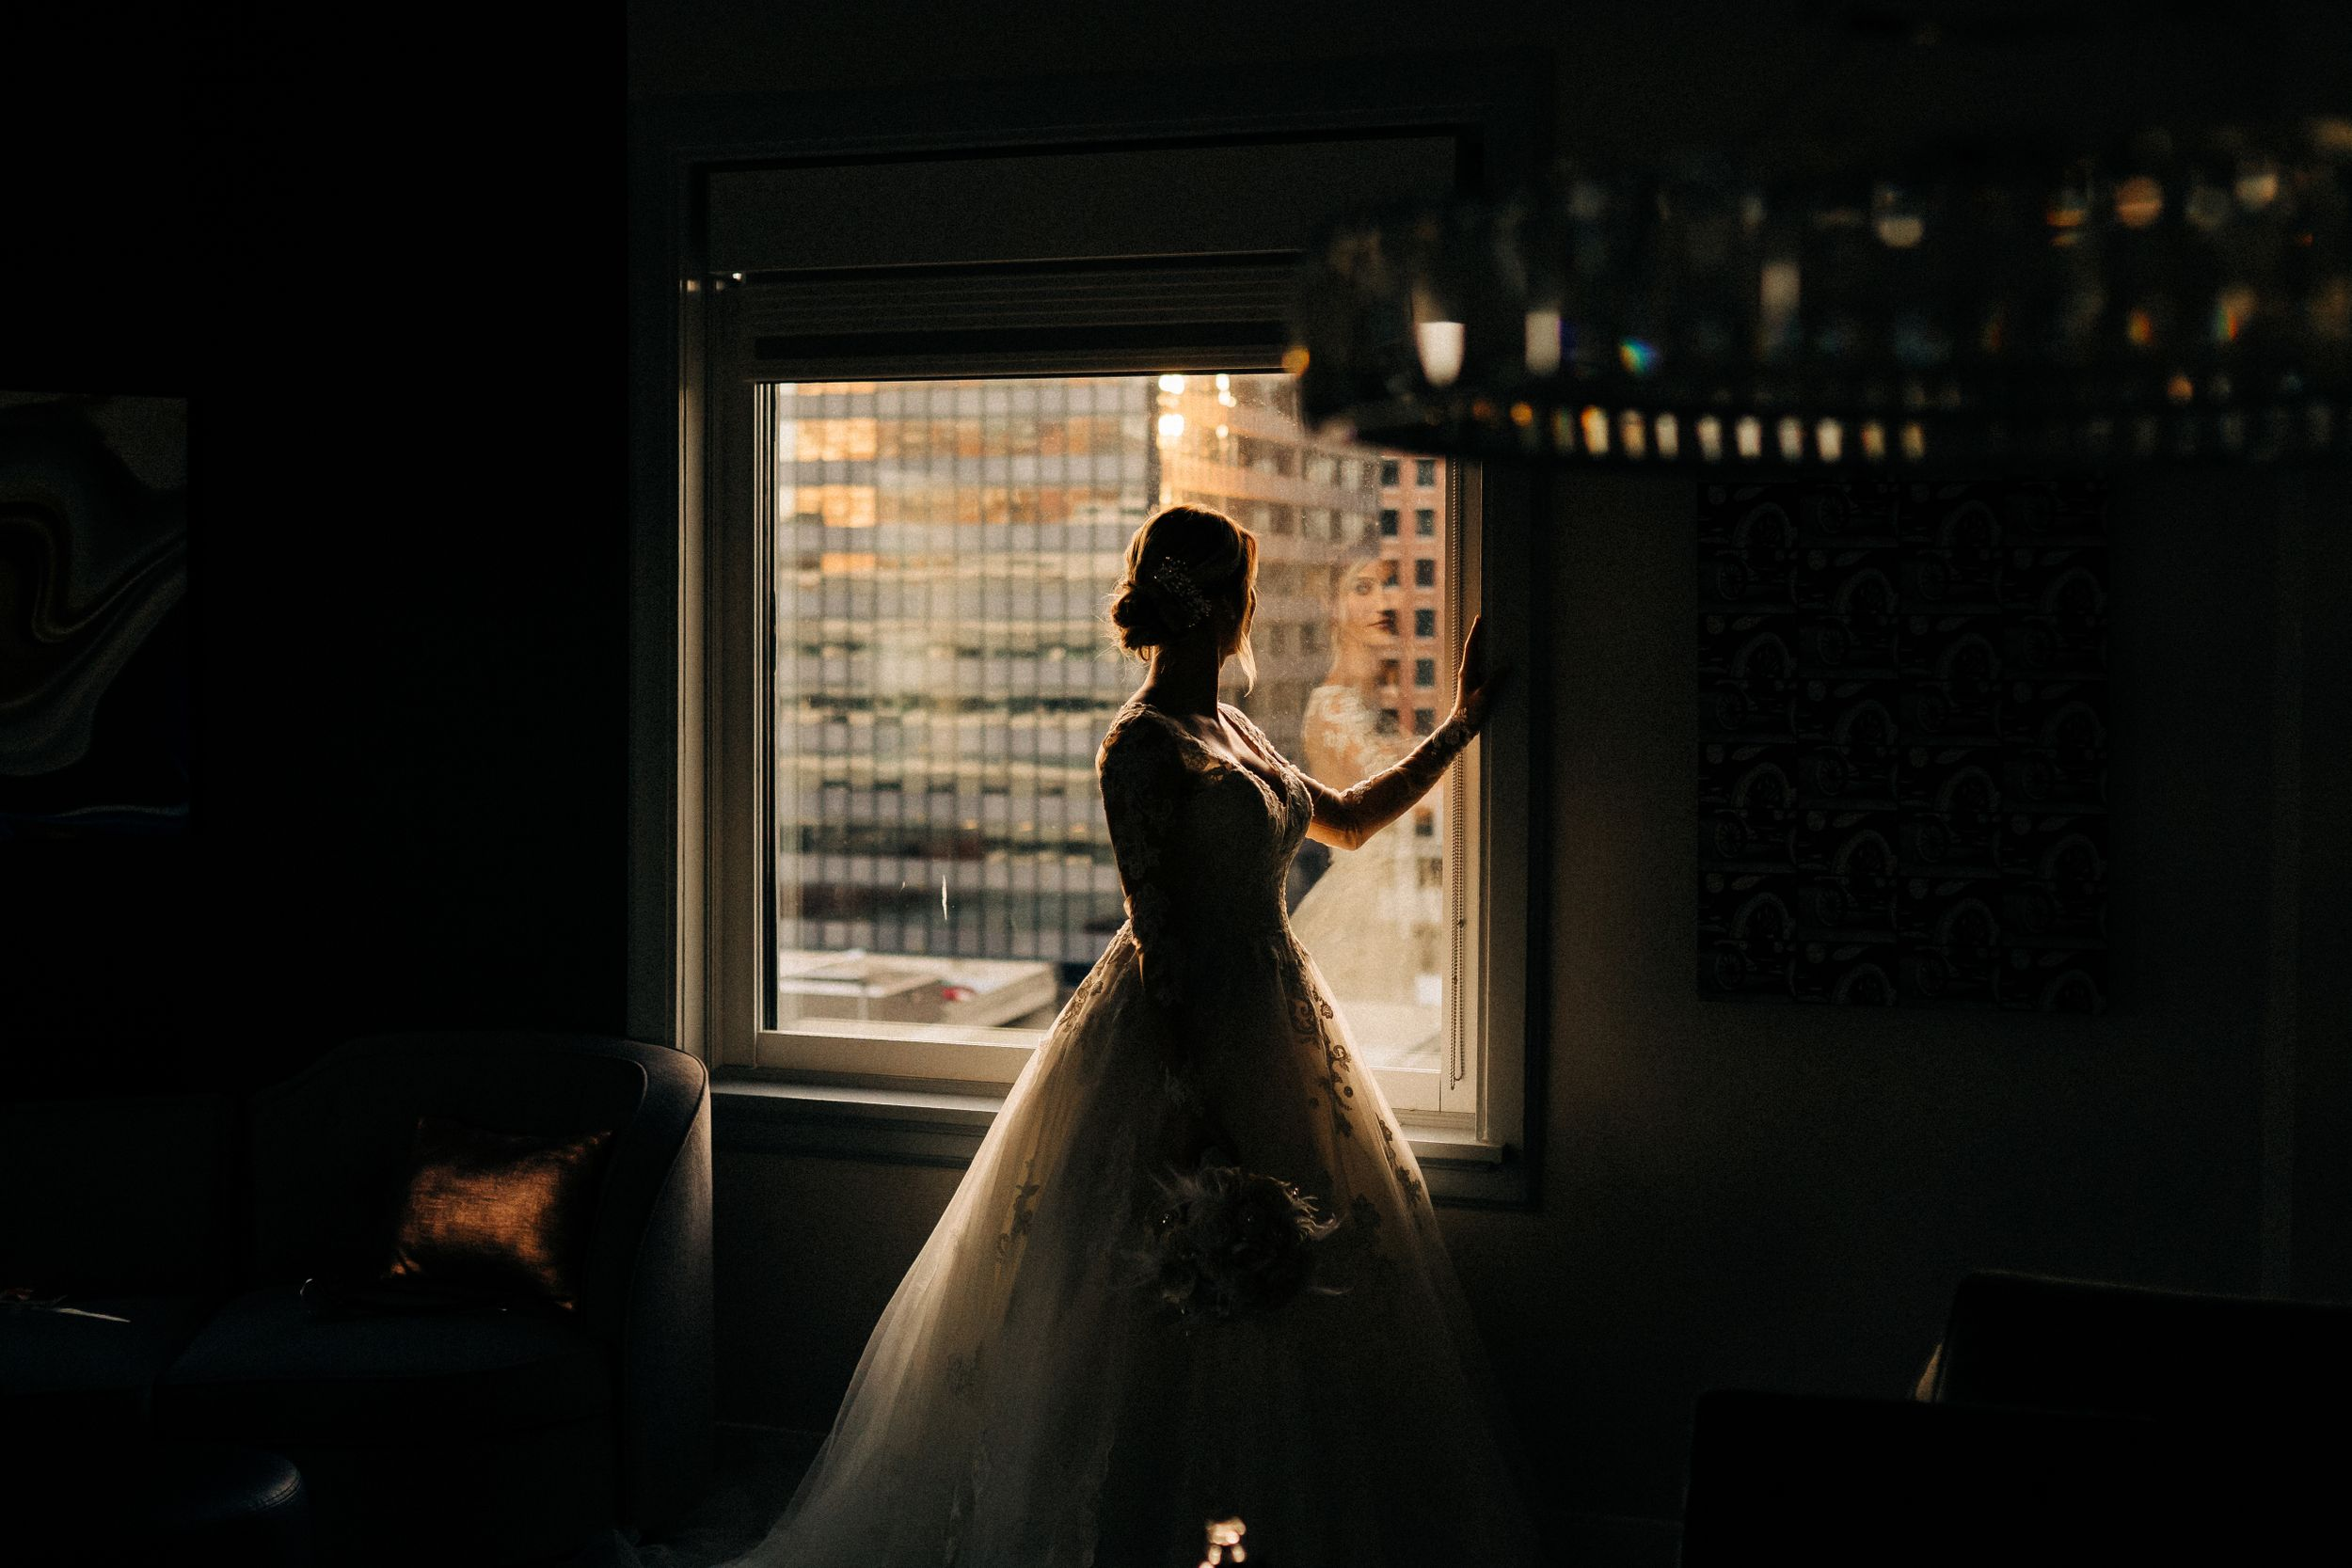 bride-looking-out-window-a-savory-hotel-desmoines-iowa-raelyn-ramey-photography